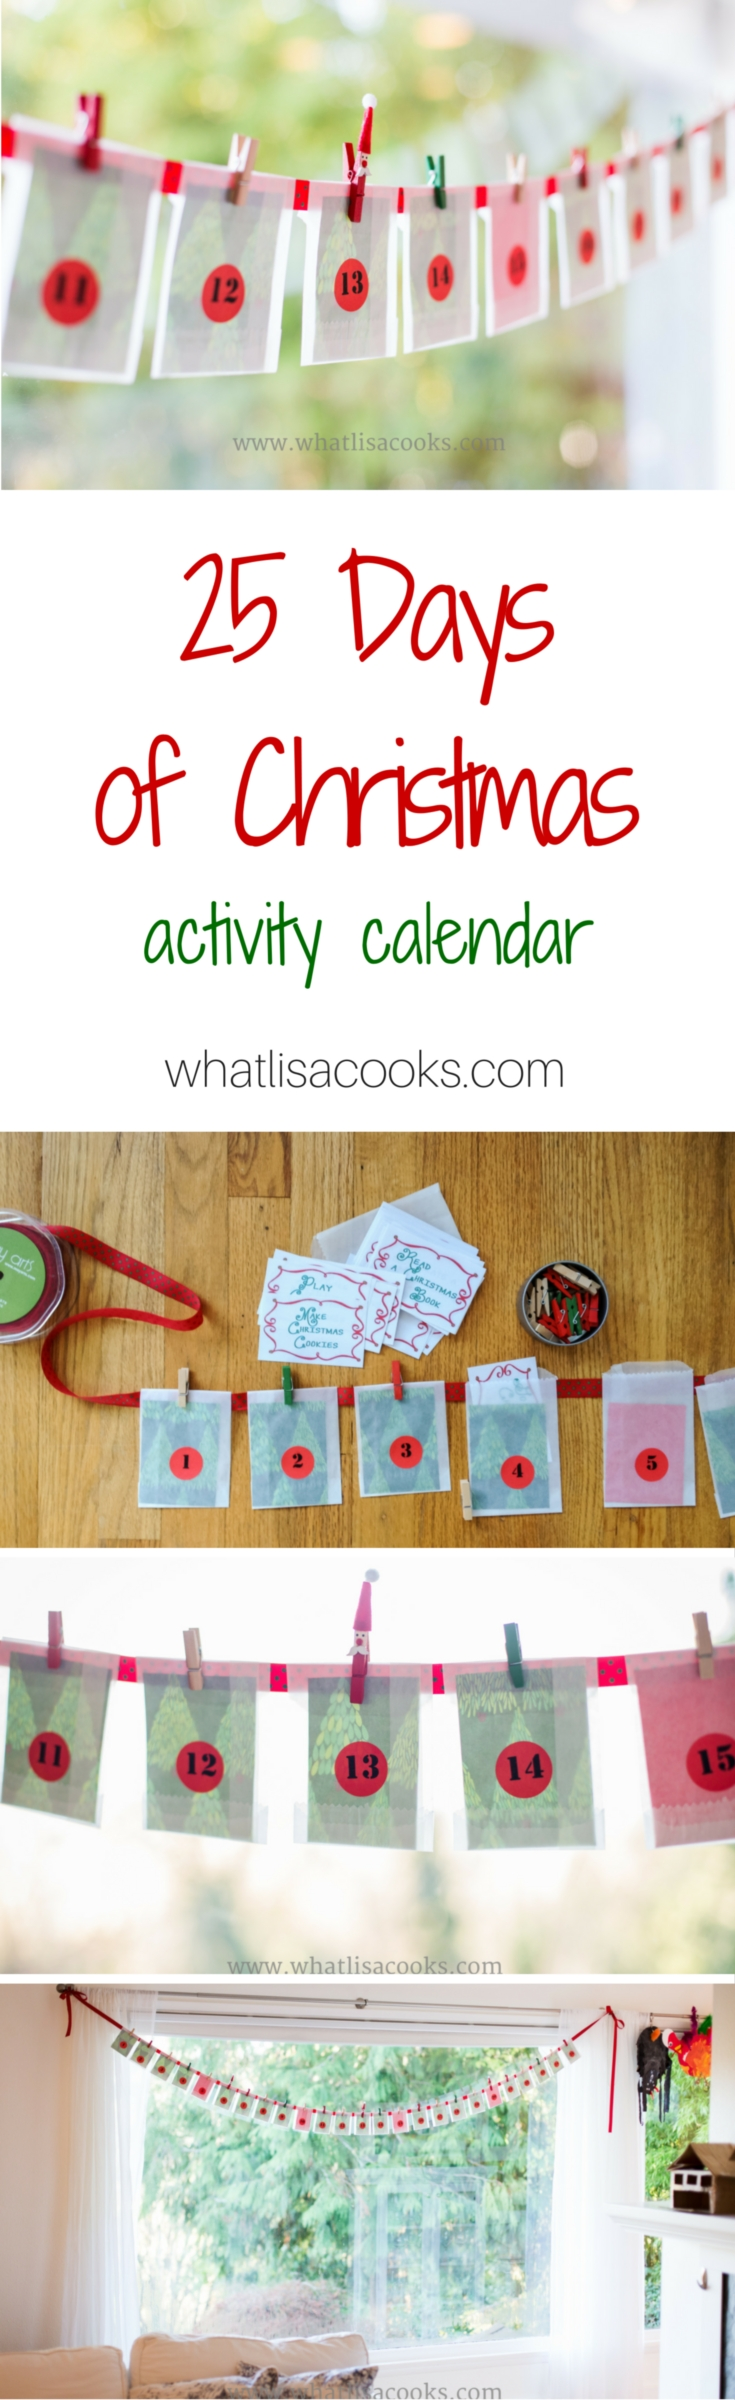 Easy homemade Christmas advent activity calendar idea - from whatlisacooks.com